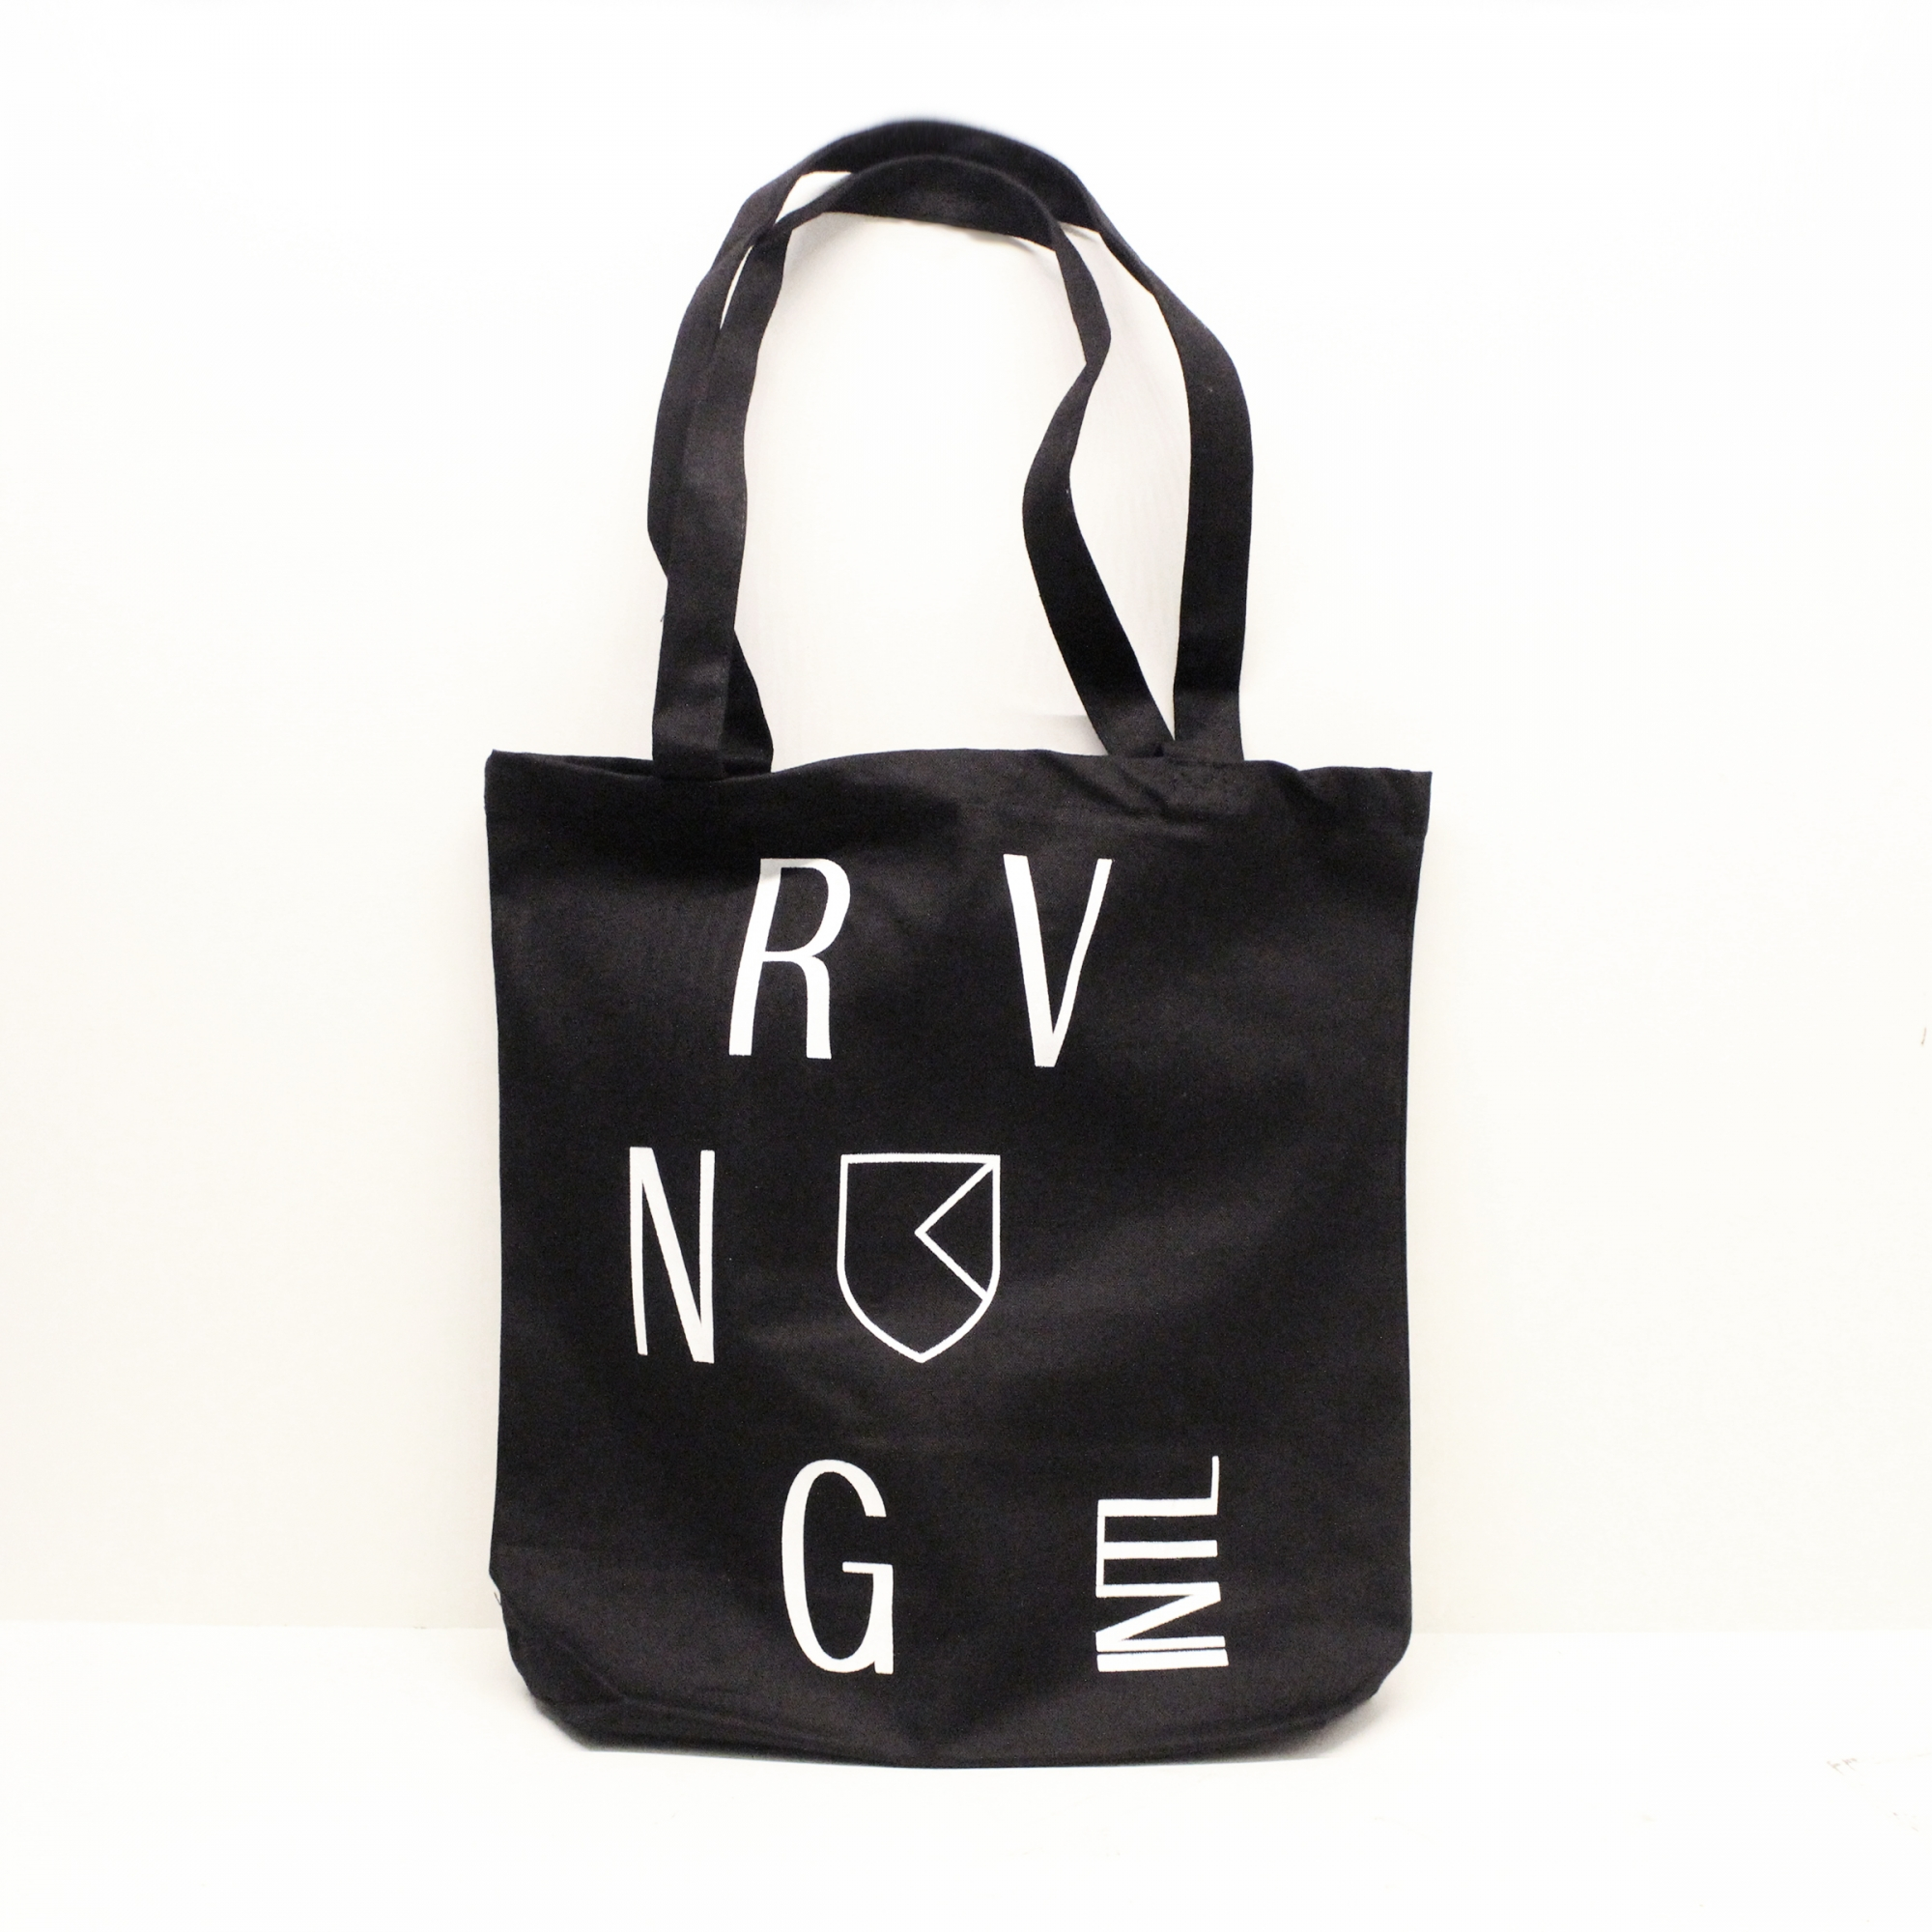 p-6139-RVNG-TOTE-NEW-ALT-FIX